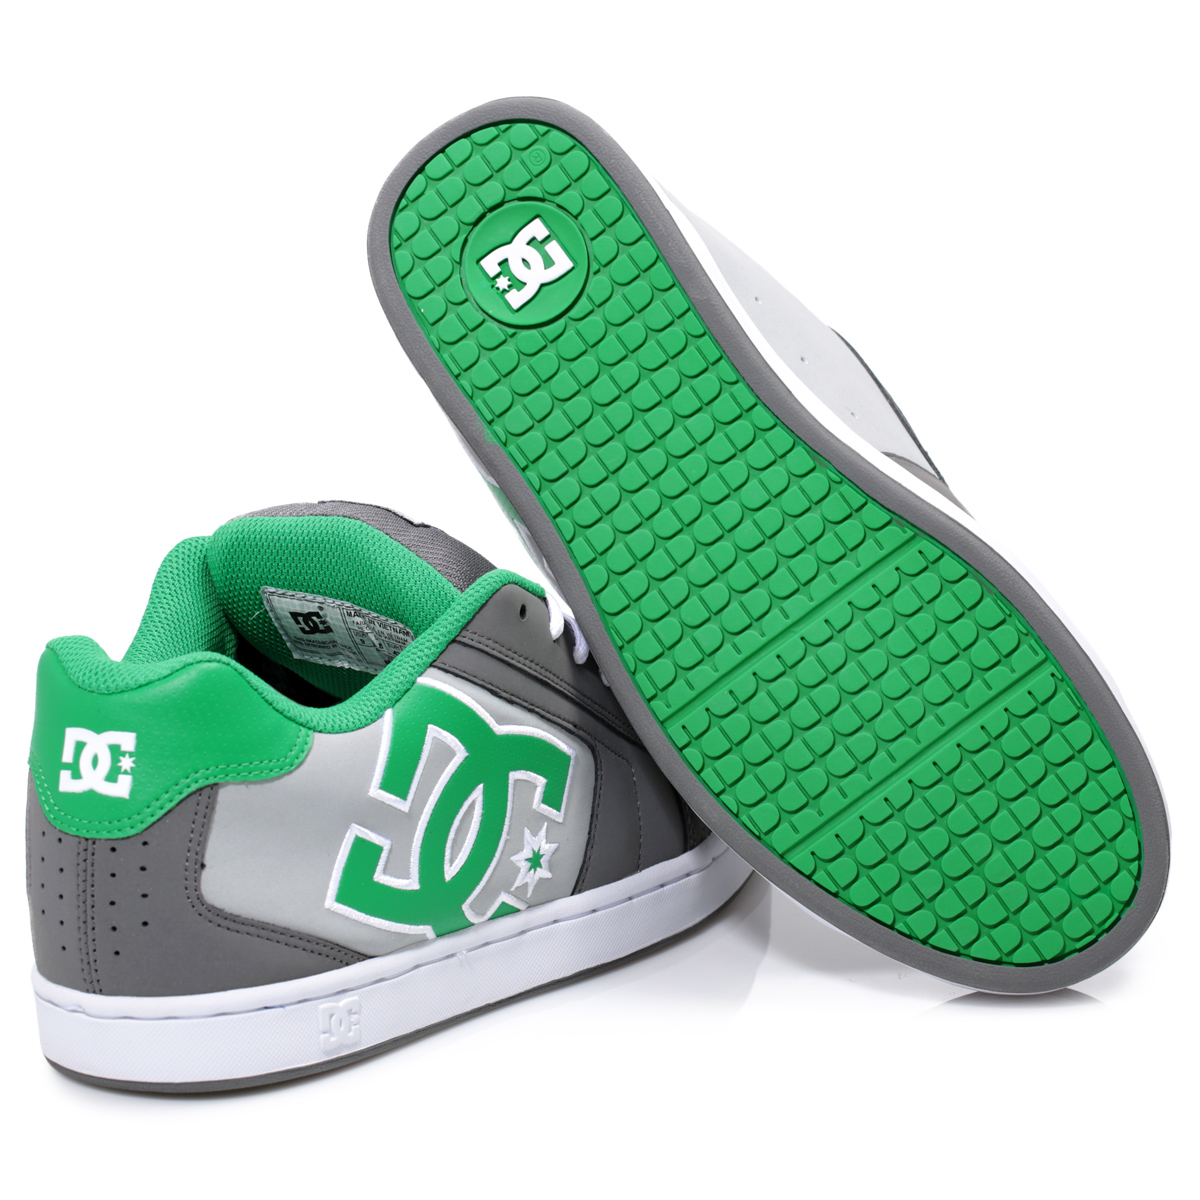 Dc Shoes Net Battleship Green Grey Mens Leather Trainers Sneakers Size